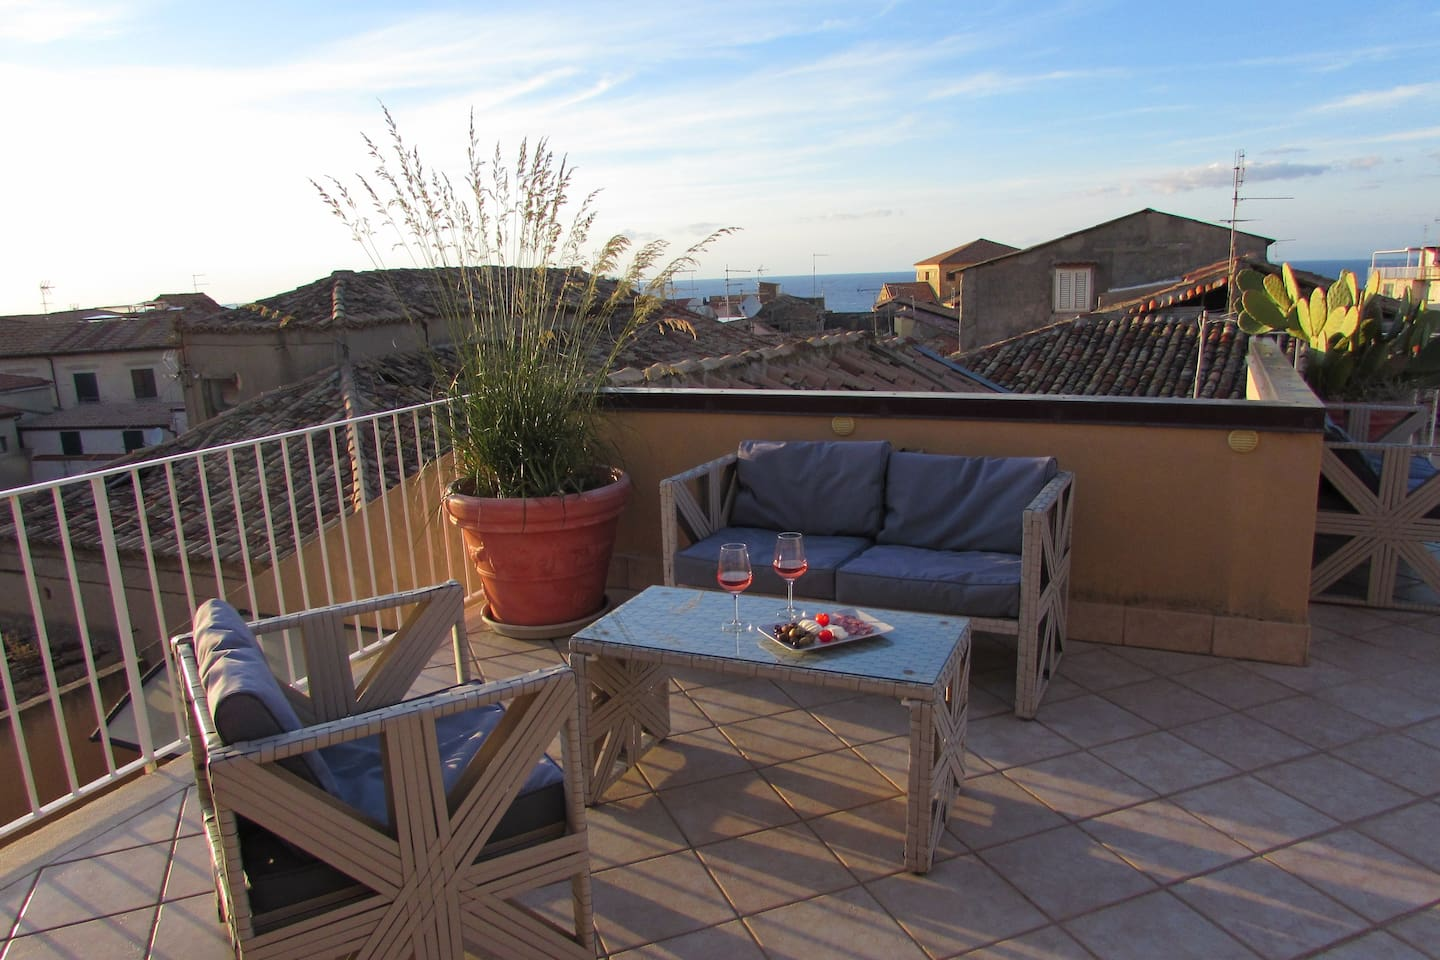 The roof terrace is shared by the whole house